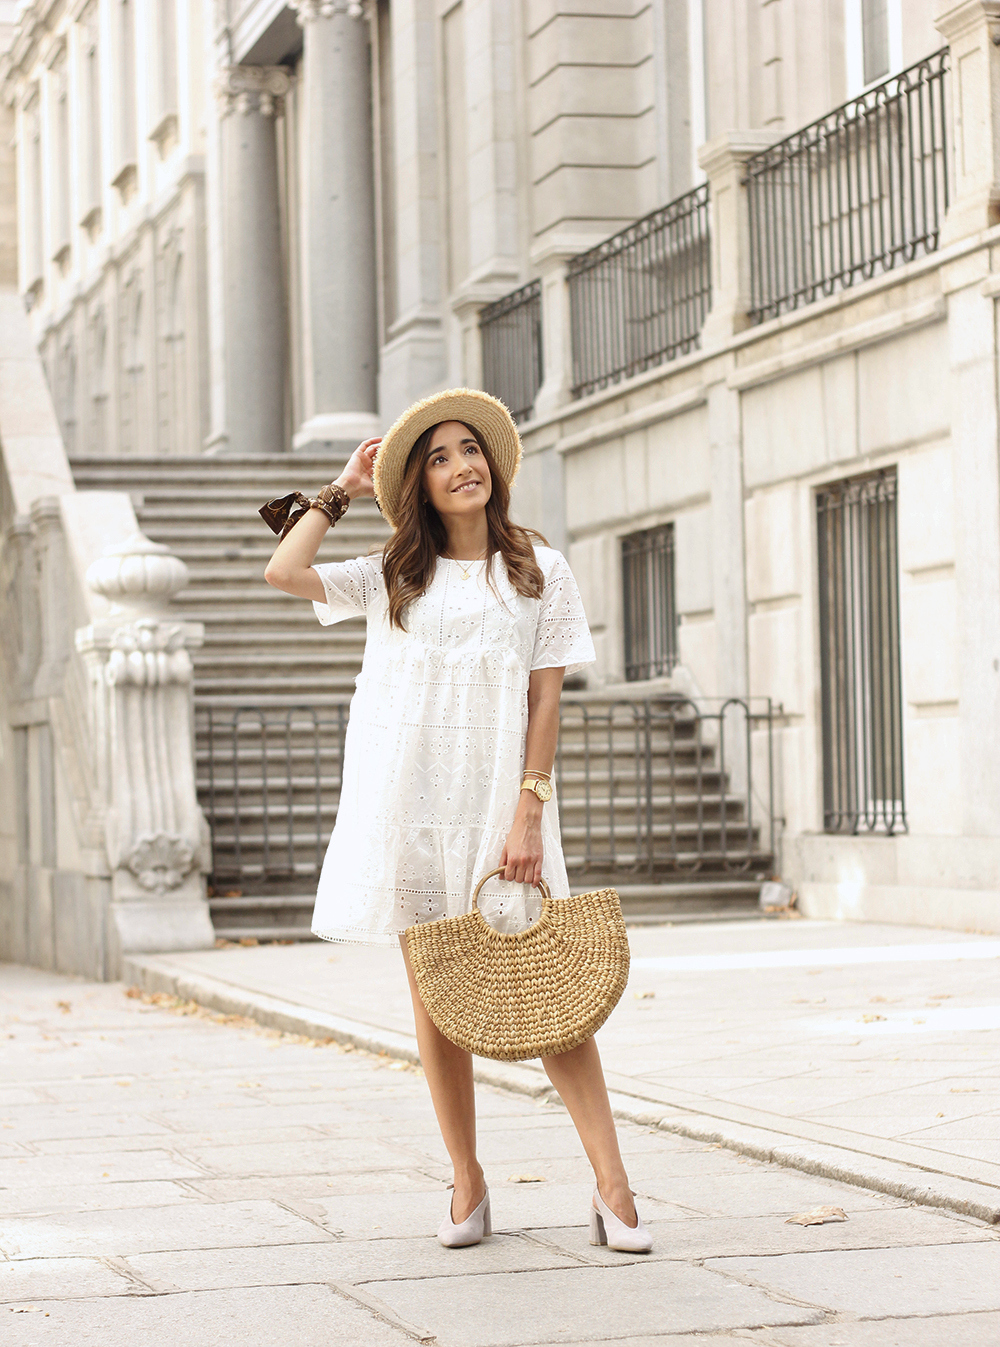 White summer dress canotier street style outfit 20191